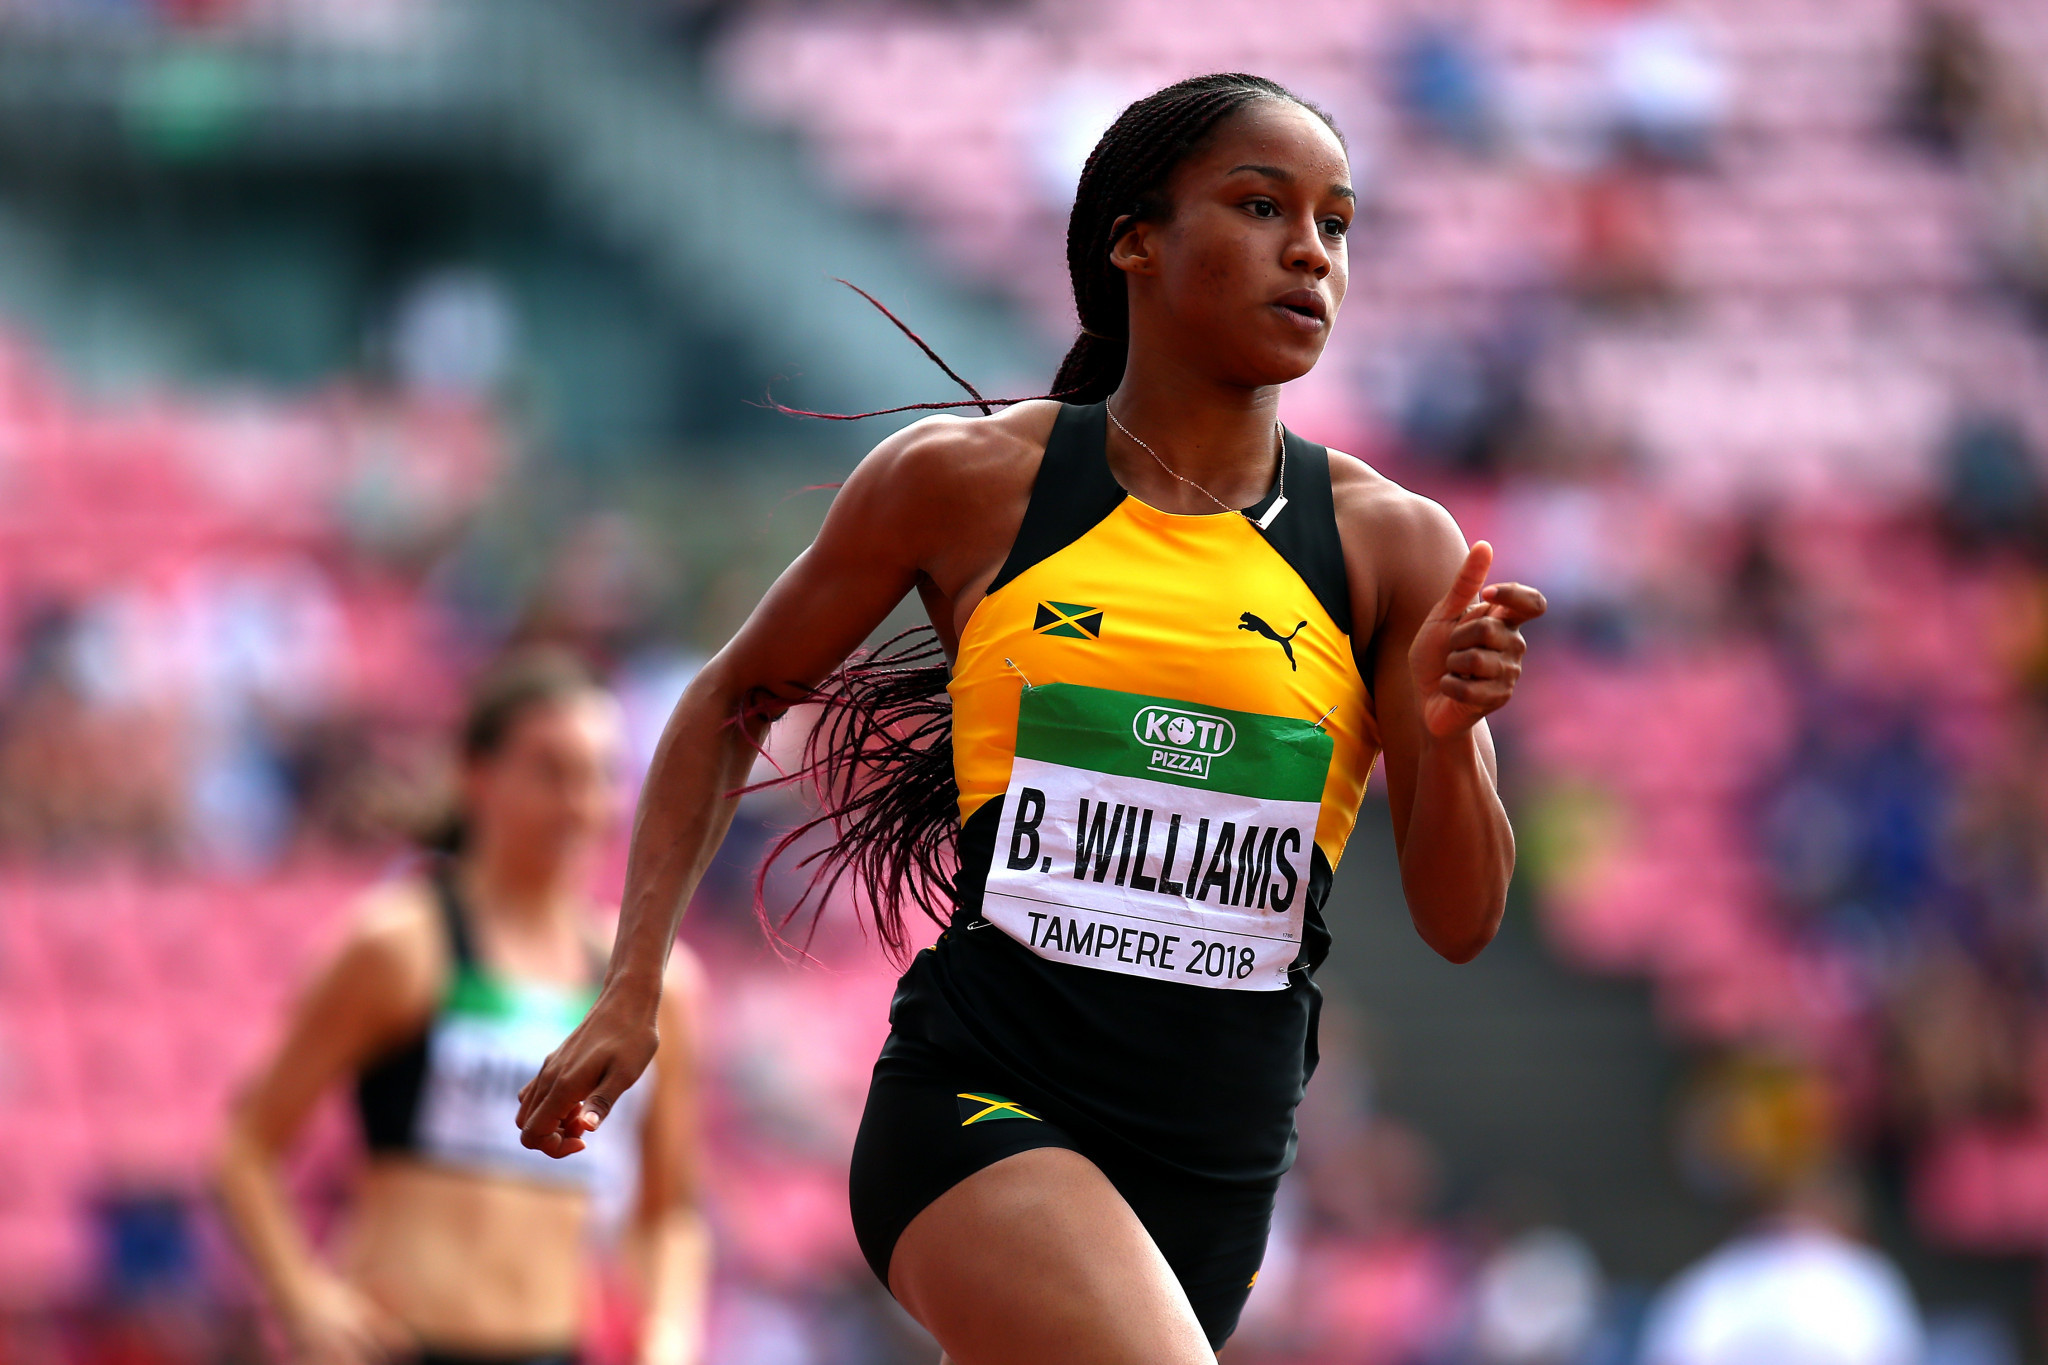 Jamaican teenage sprint star Williams faces ban for failed doping test